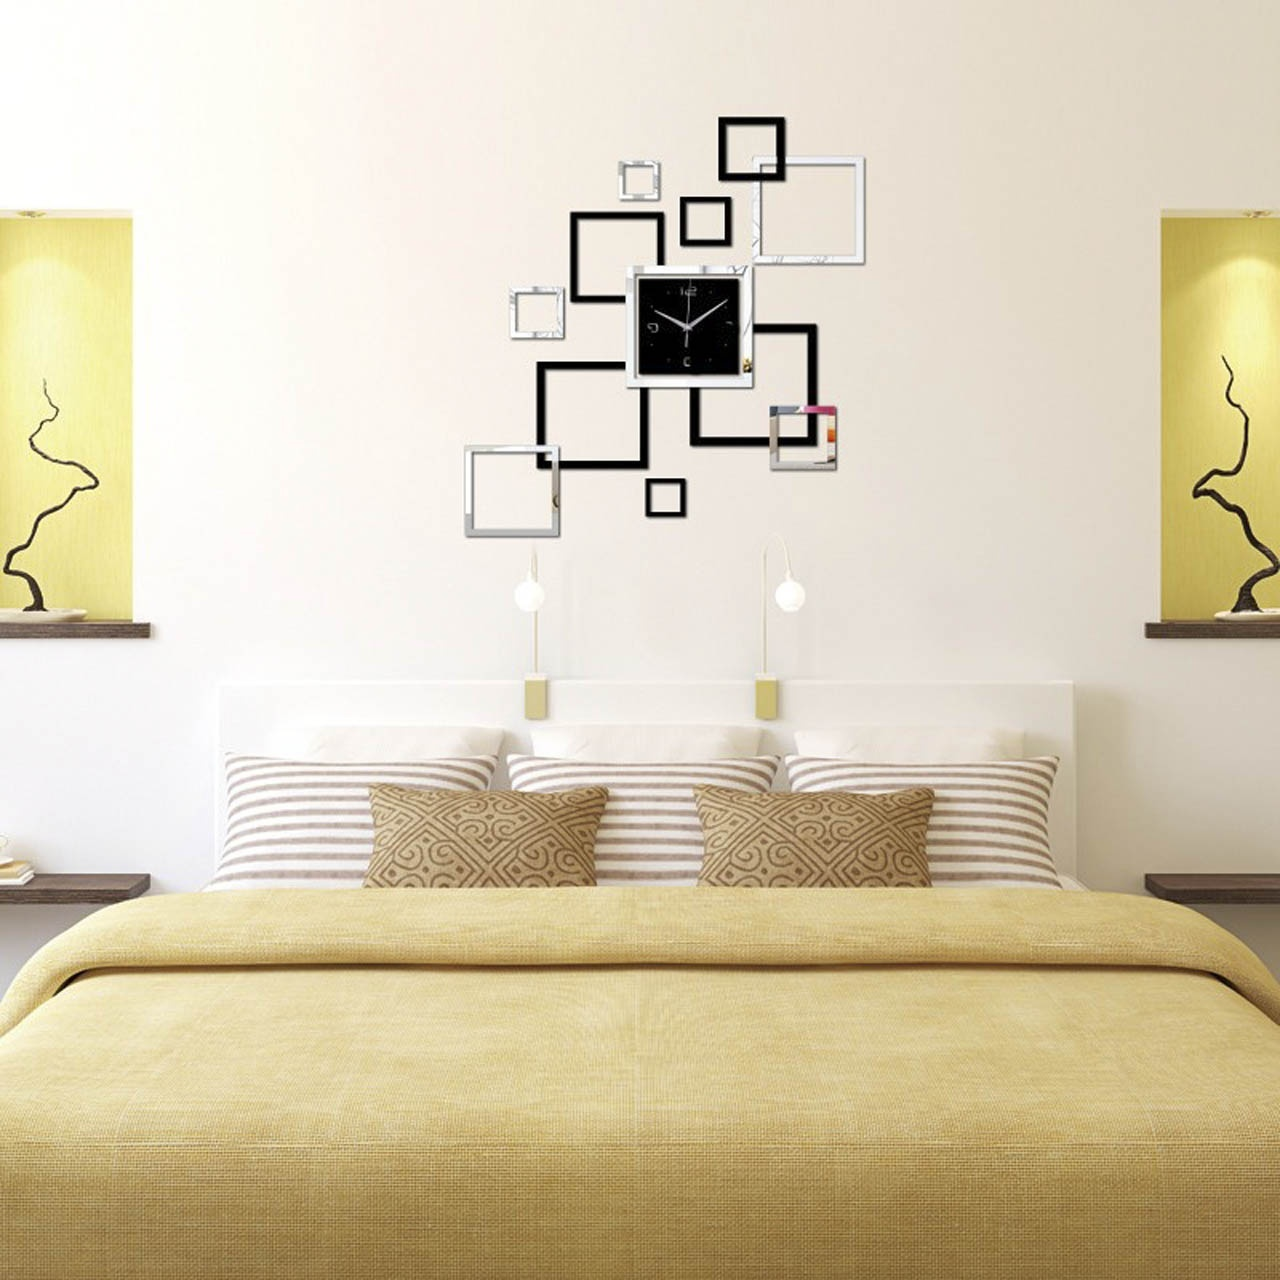 Hot sale modern design 3d diy diy wall clock mirror for Bedroom wall mirrors for sale